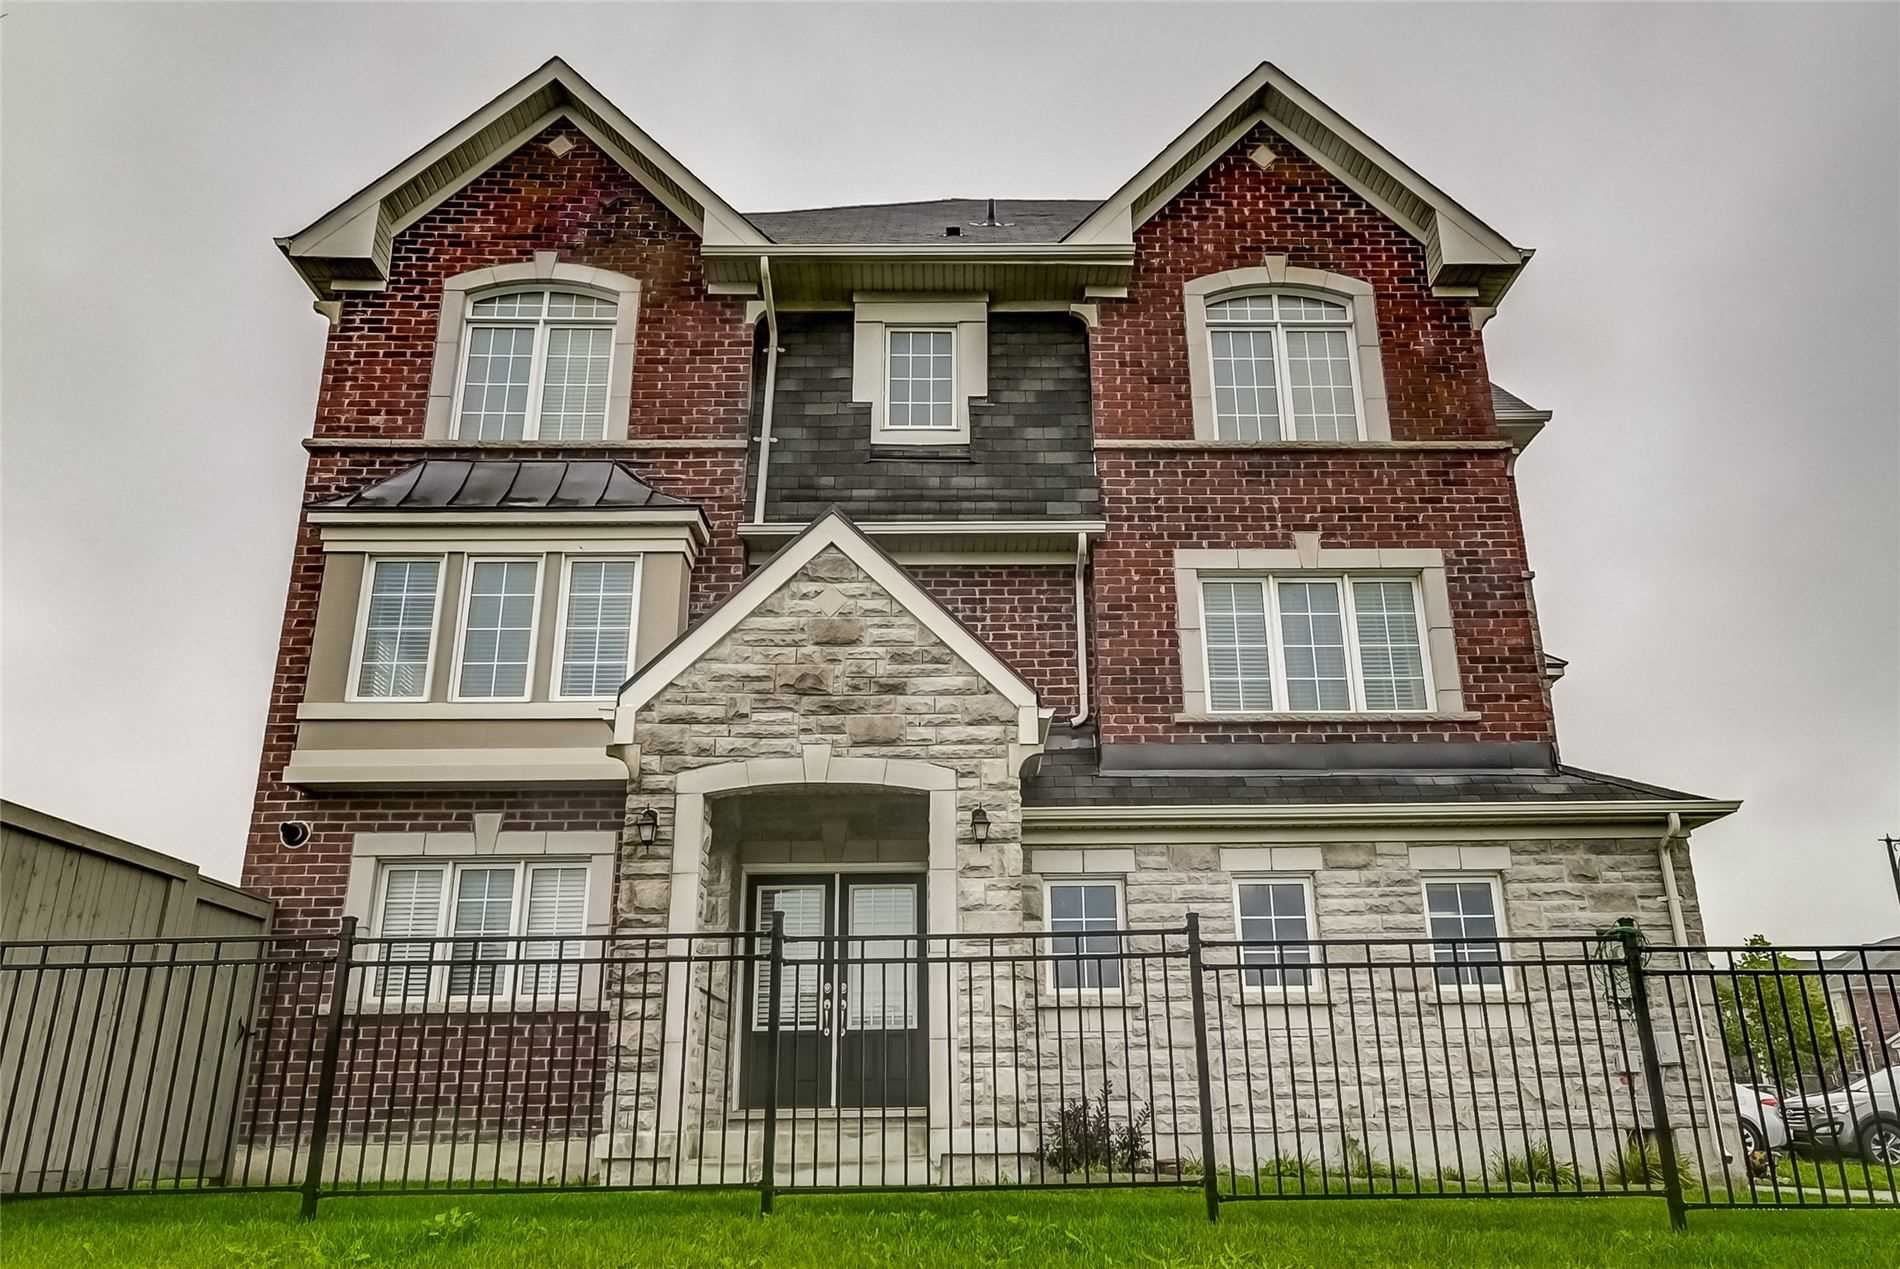 38 Quillberry Clse, Brampton, ON L7A4N8 - MLS#: W5392706